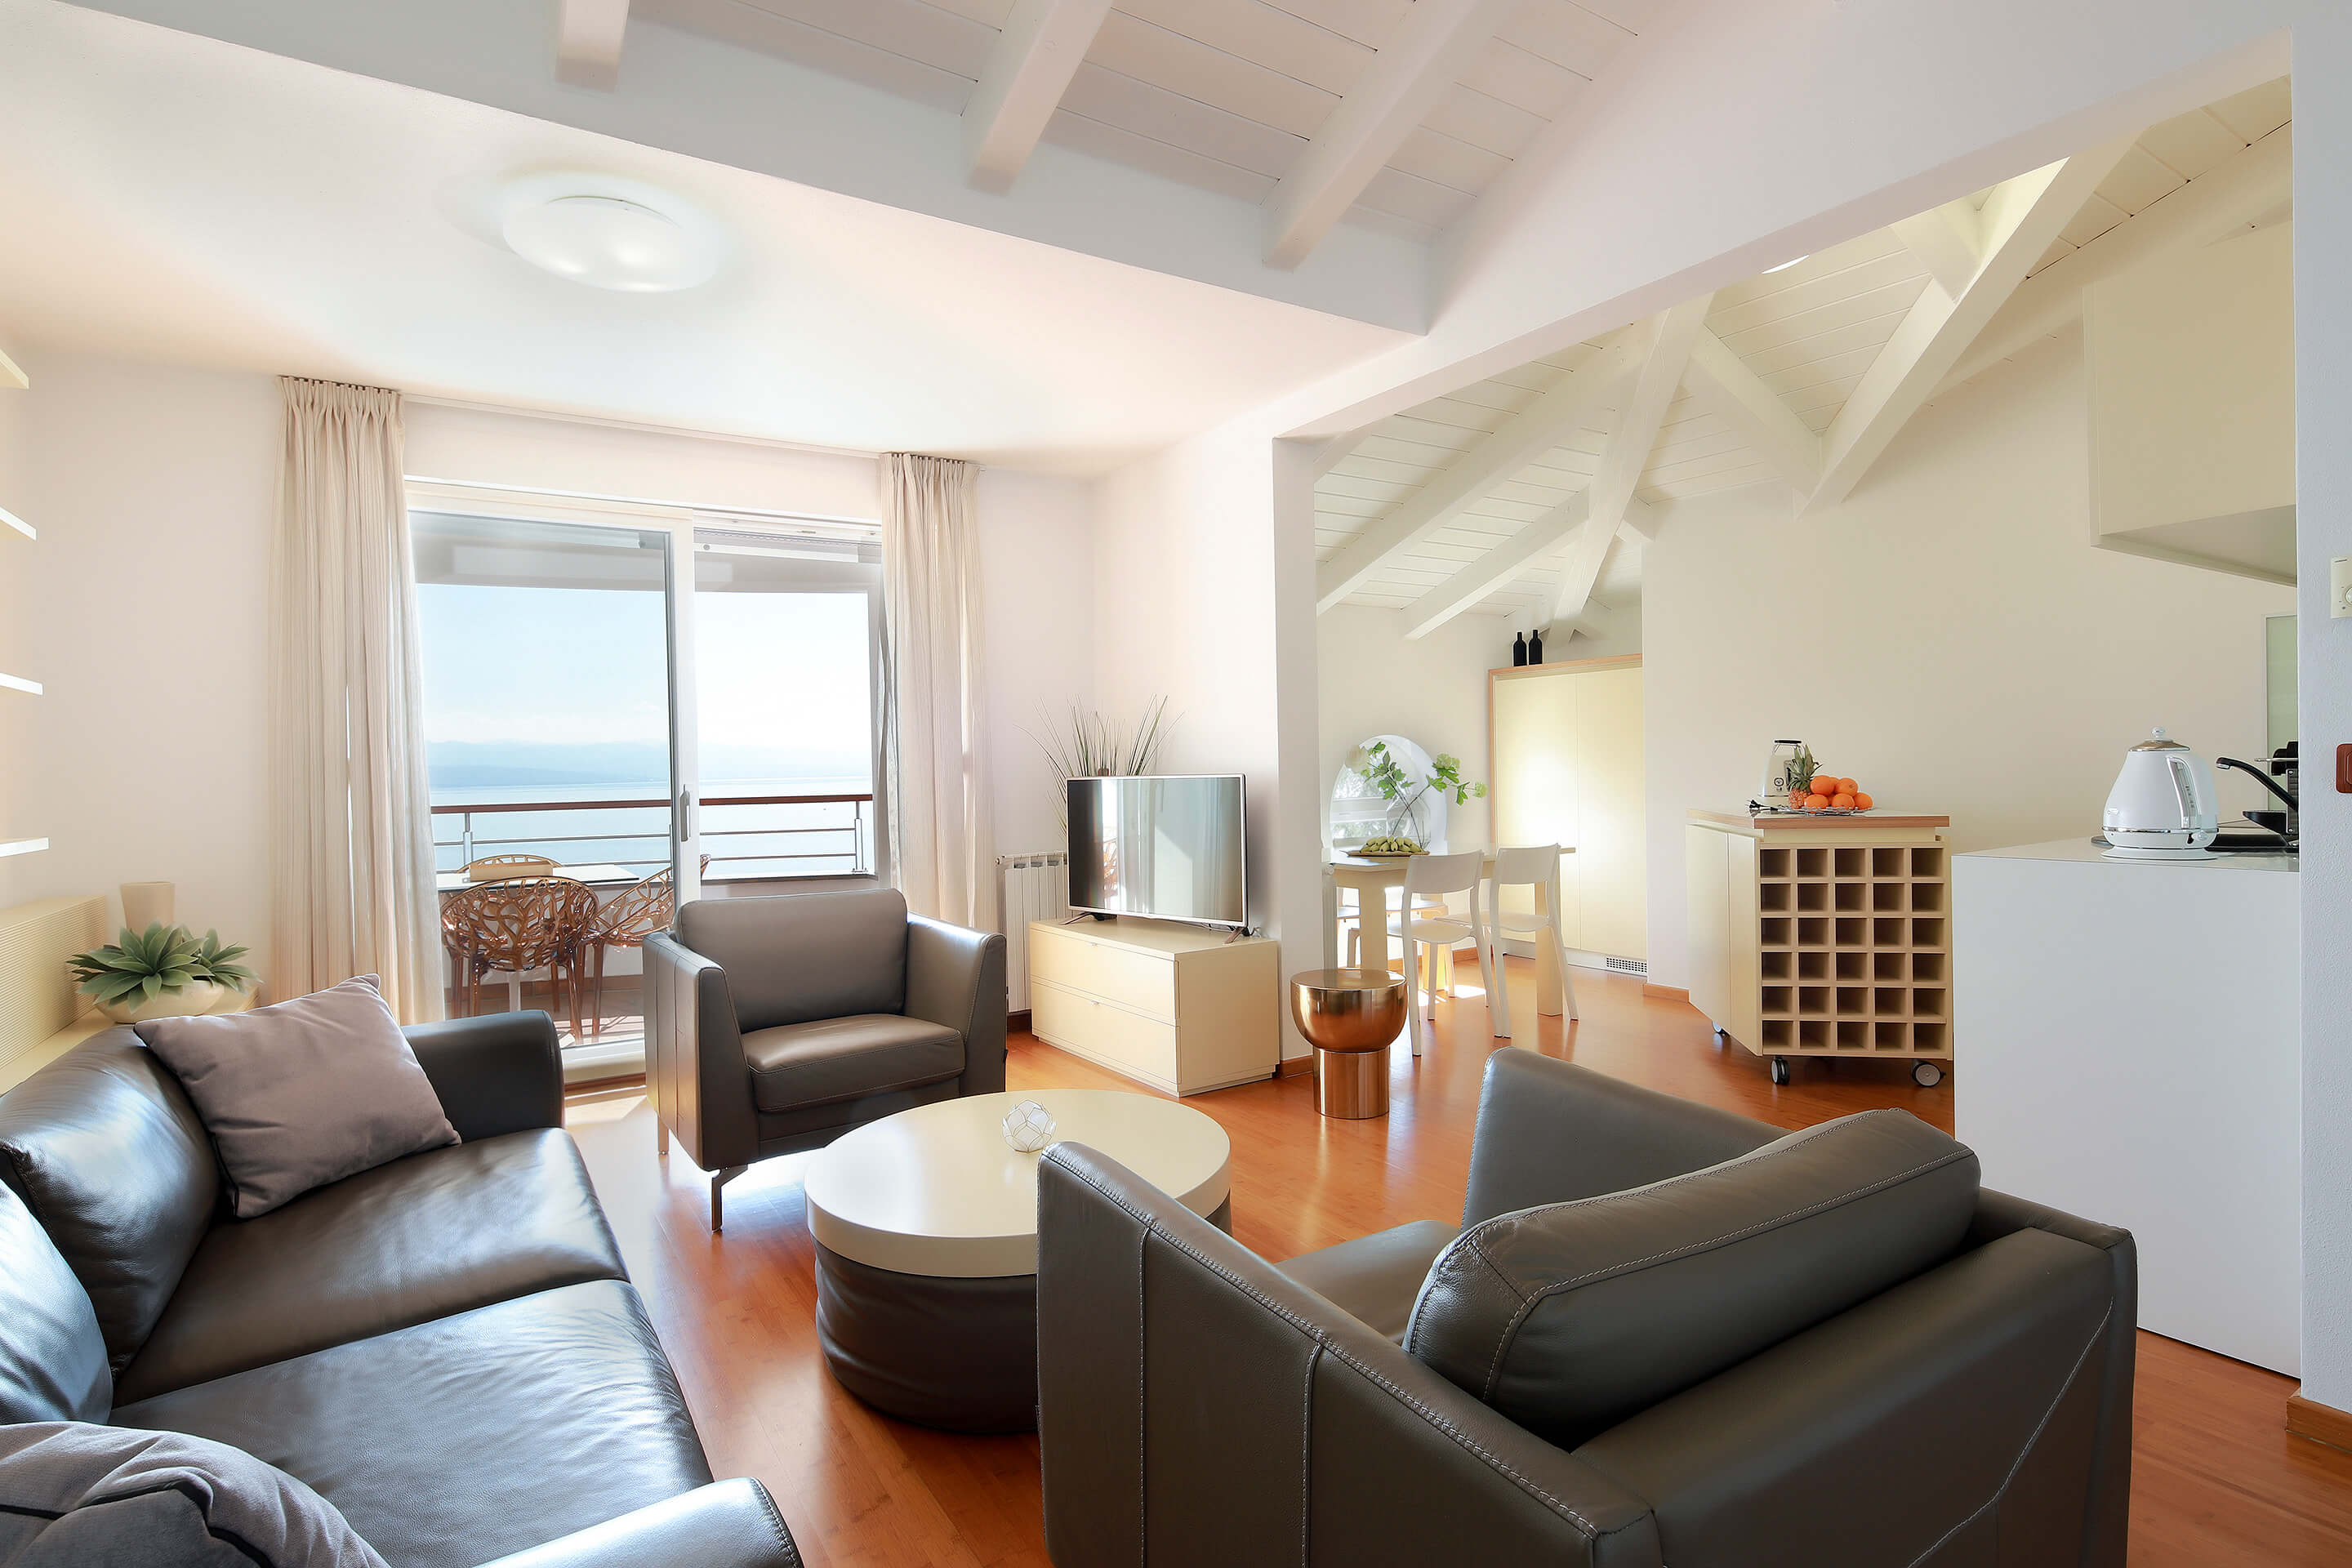 A5 - new luxury - living room - kitchen - dining area - balcony - TV - sea view